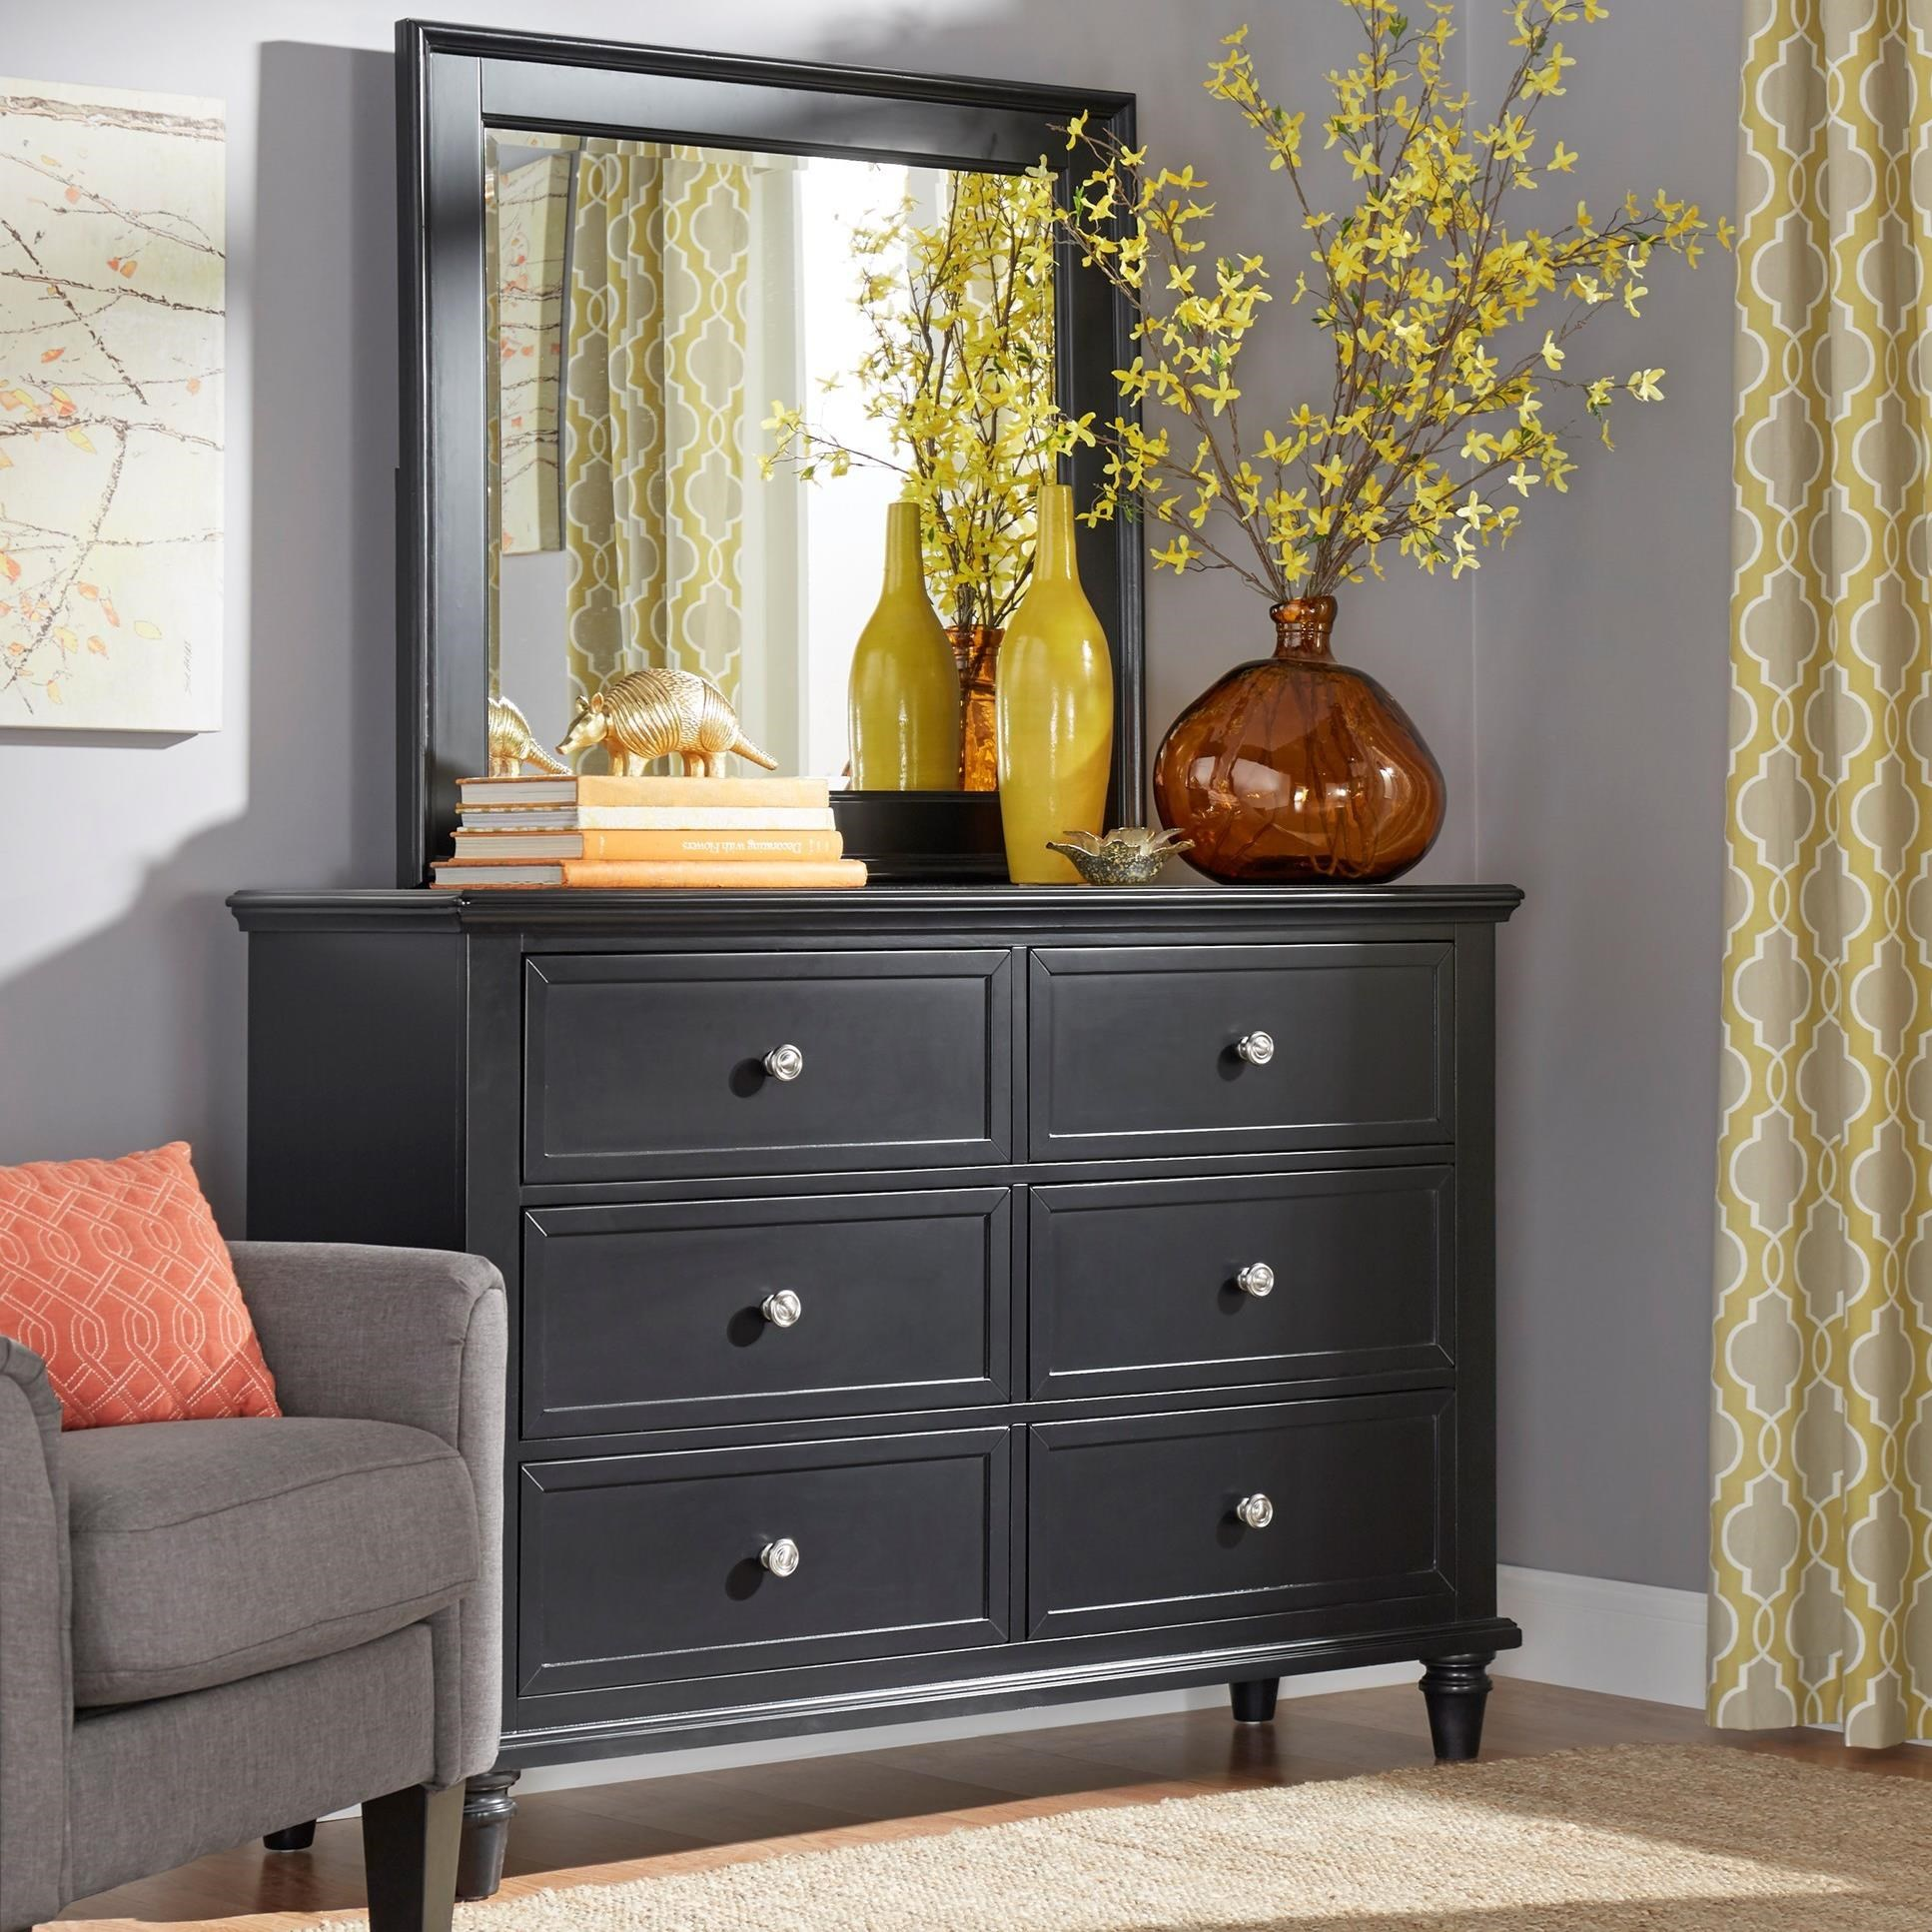 E210 Dresser and Mirror Set by Homelegance at Rooms for Less